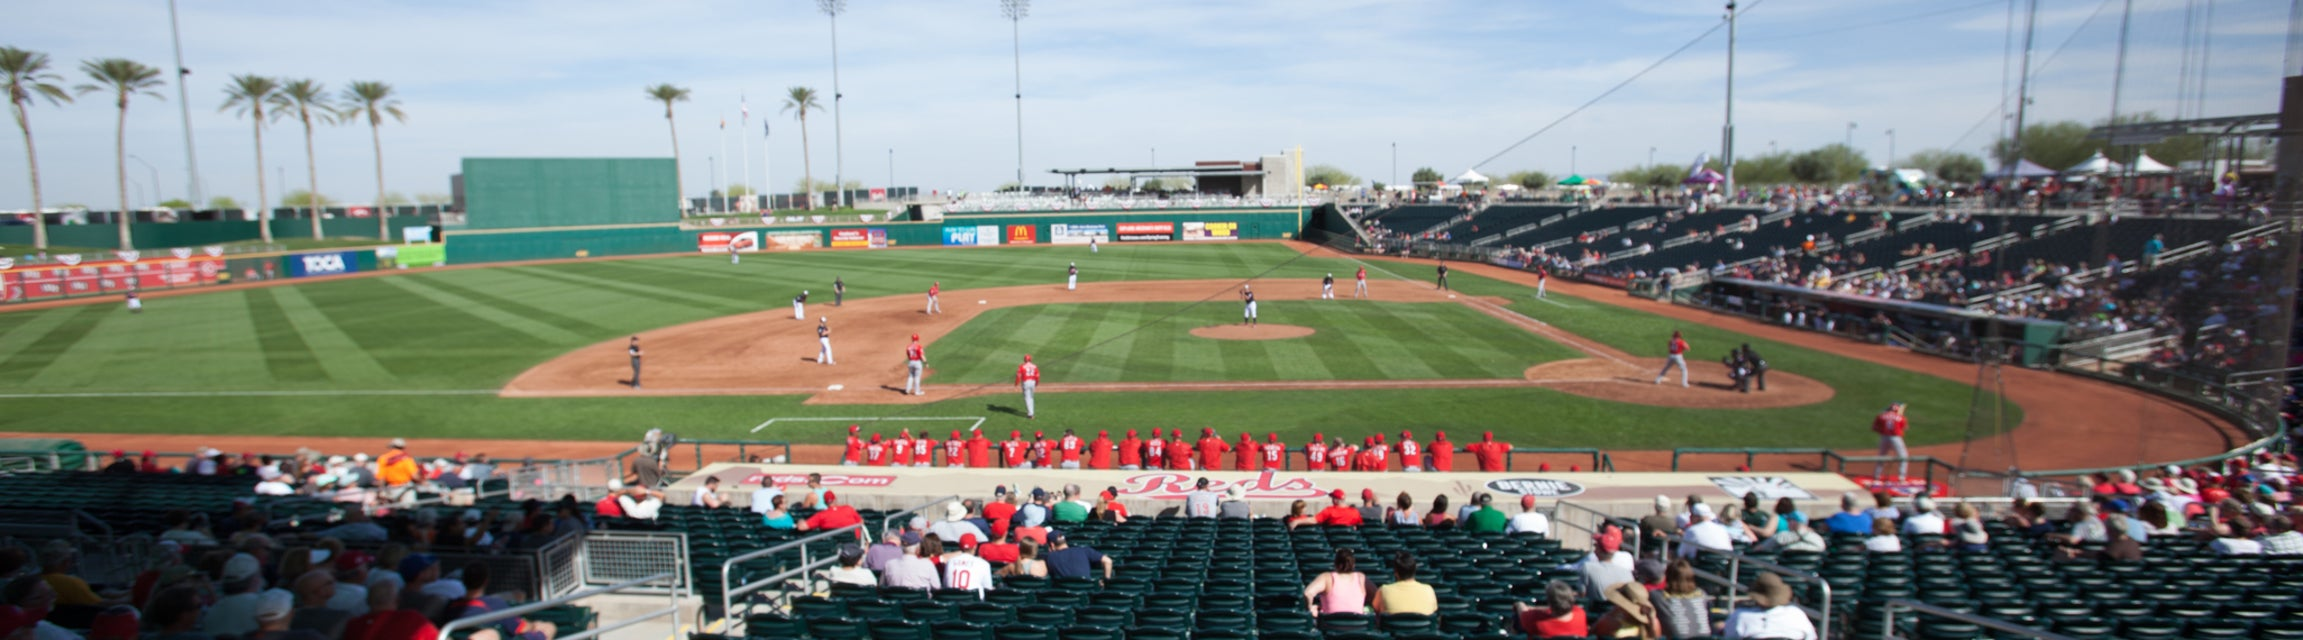 Reds - Spring Training Tickets